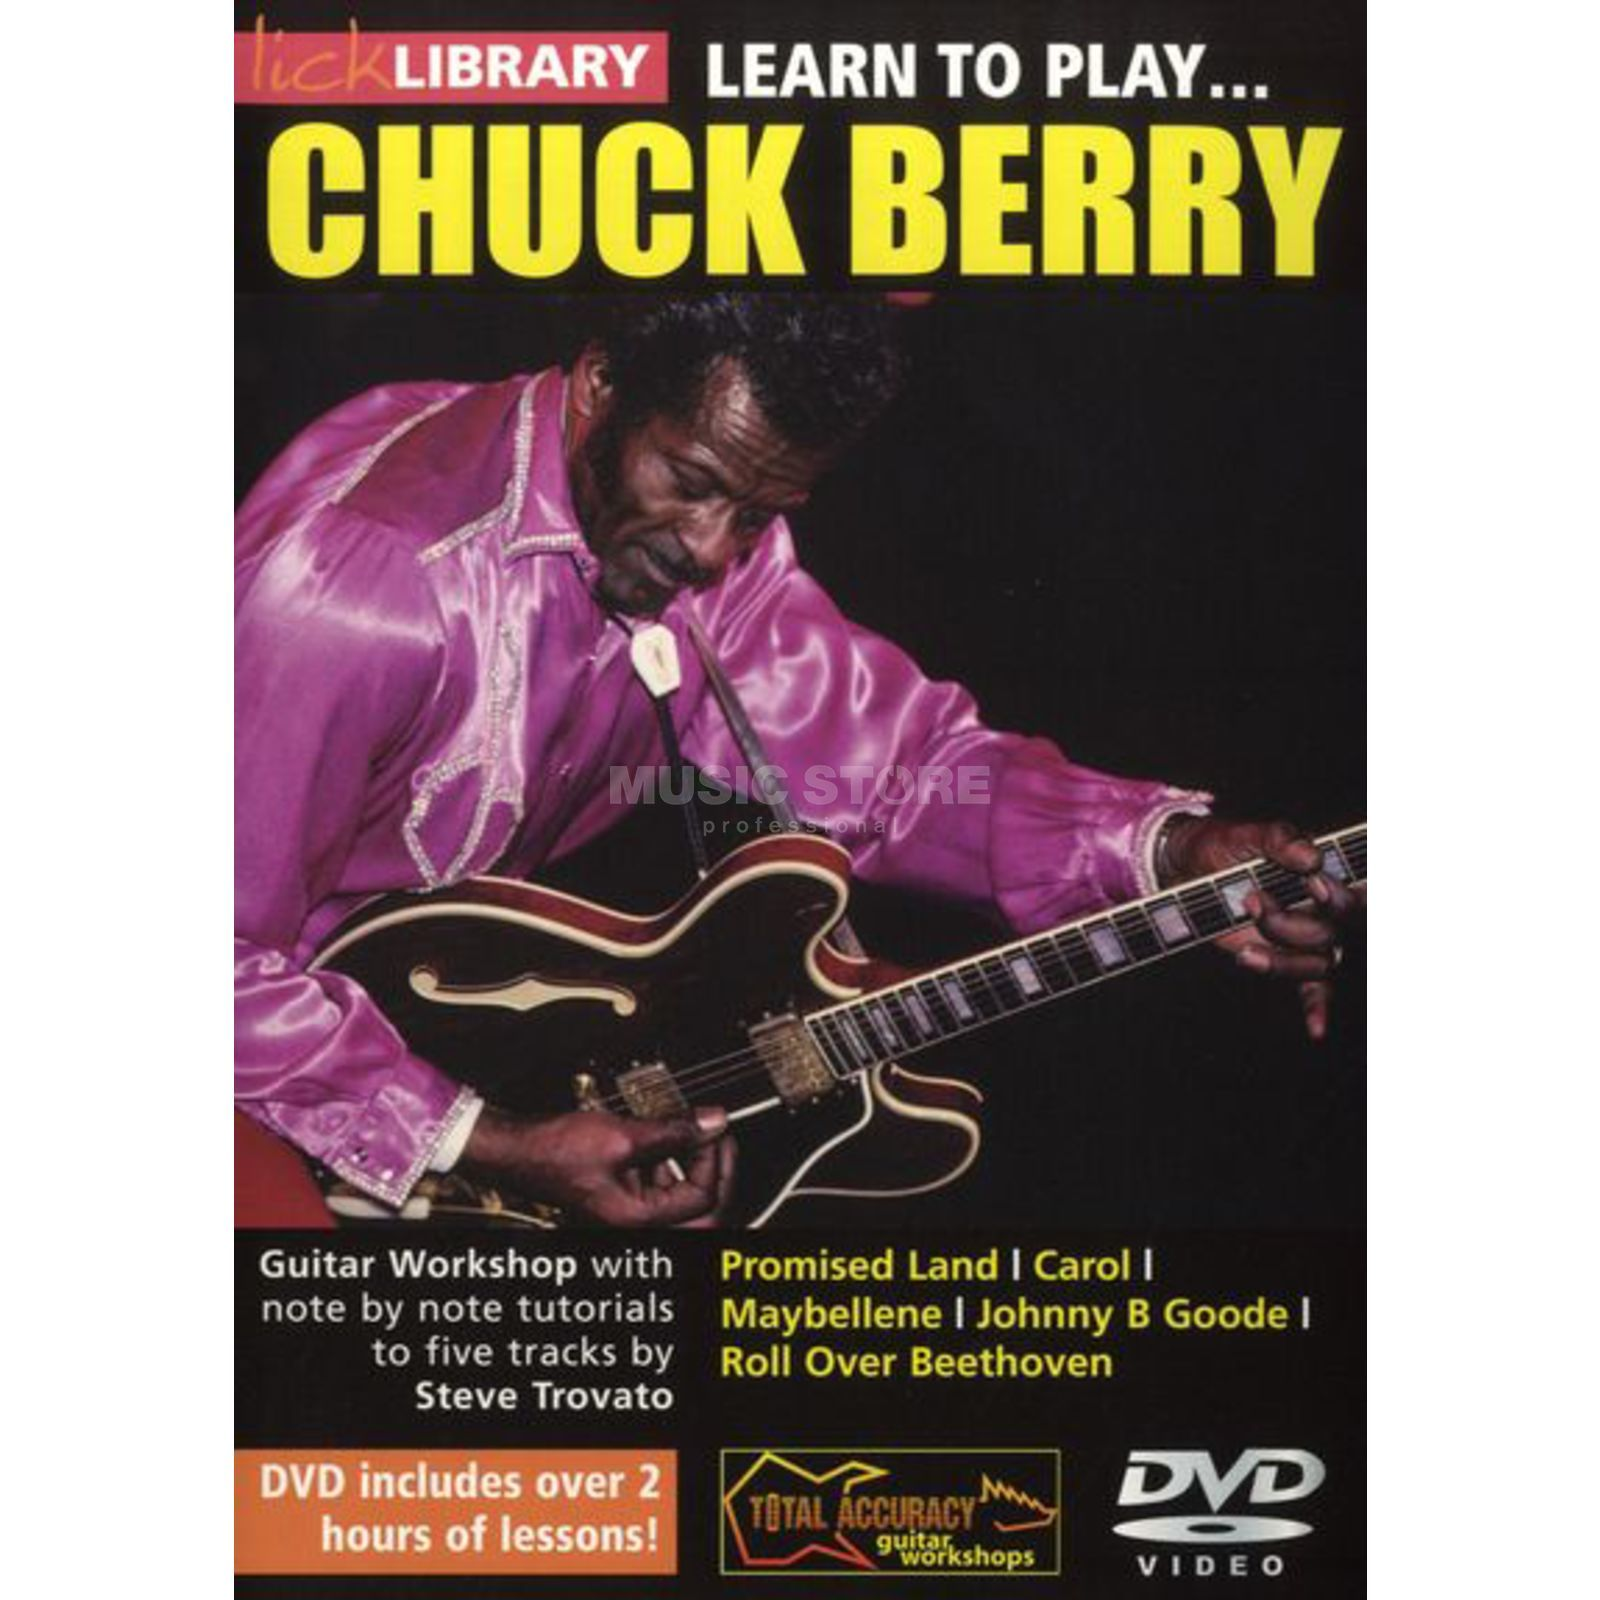 Roadrock International Lick Library: Learn To Play Chuck Berry DVD Produktbillede